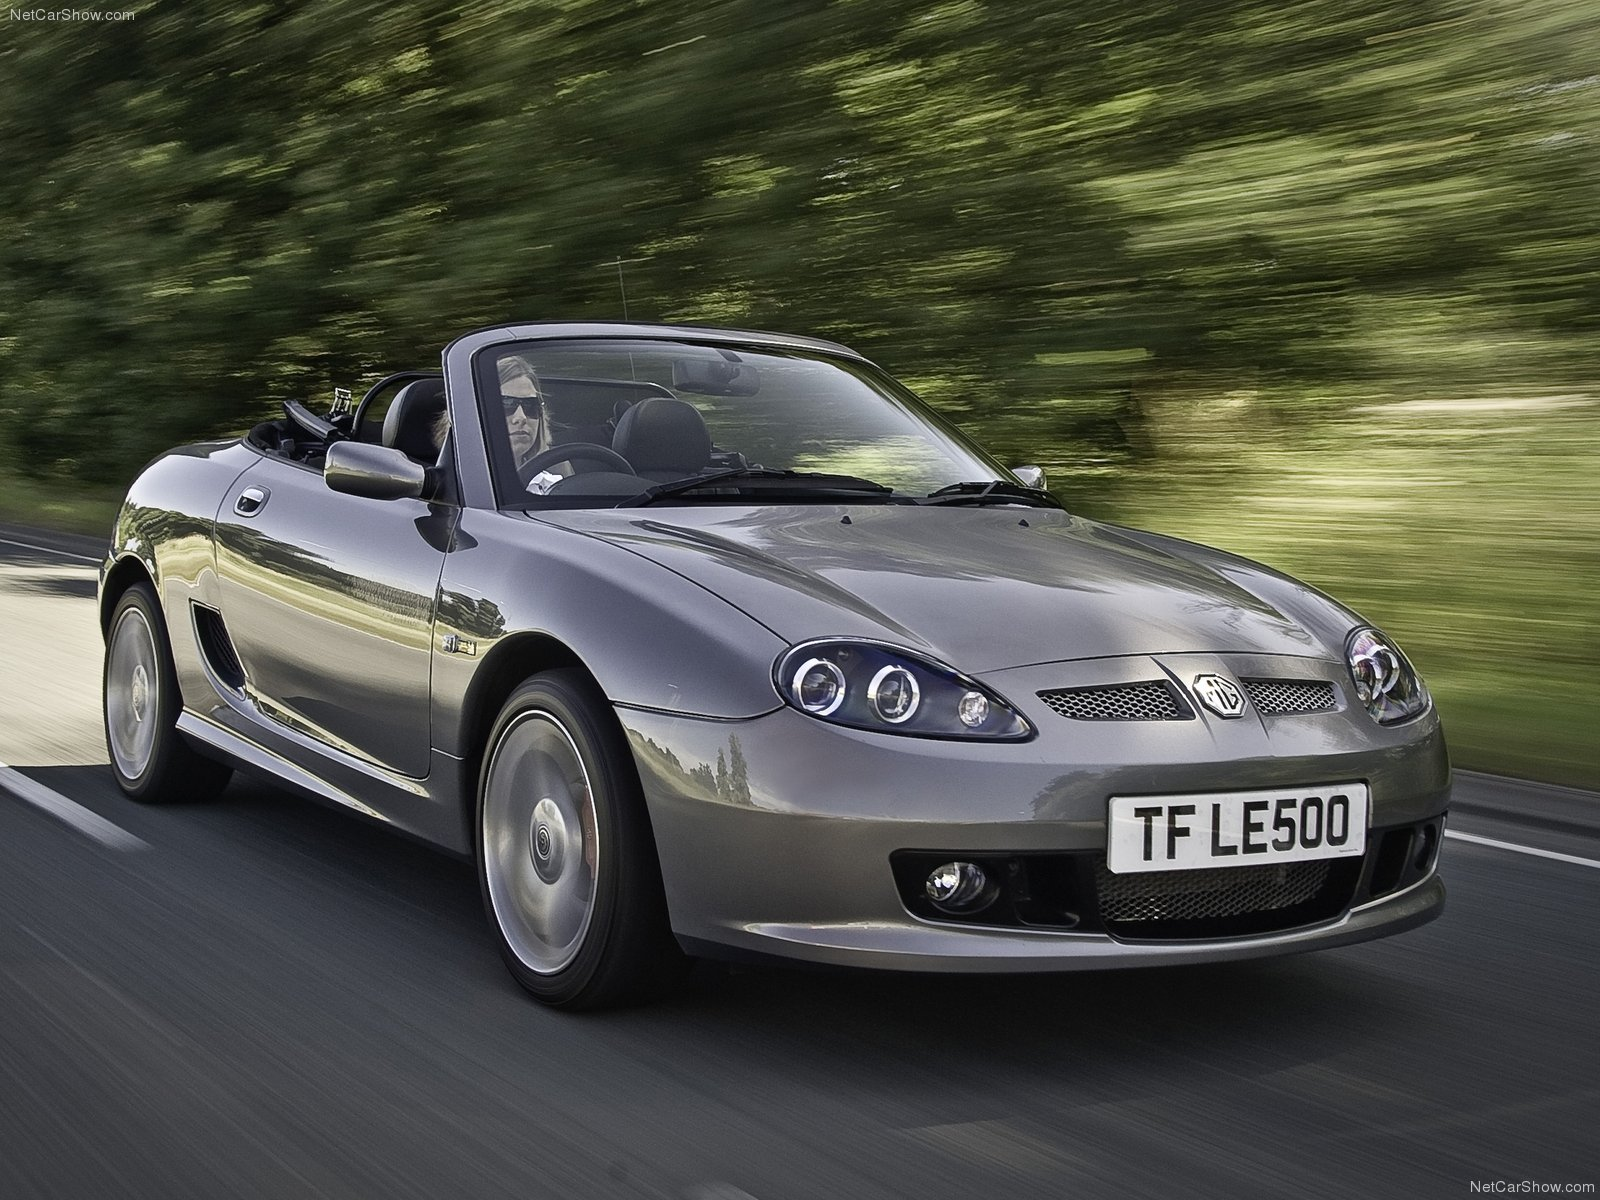 MG-TF_LE500_2008_1600x1200_wallpaper_01